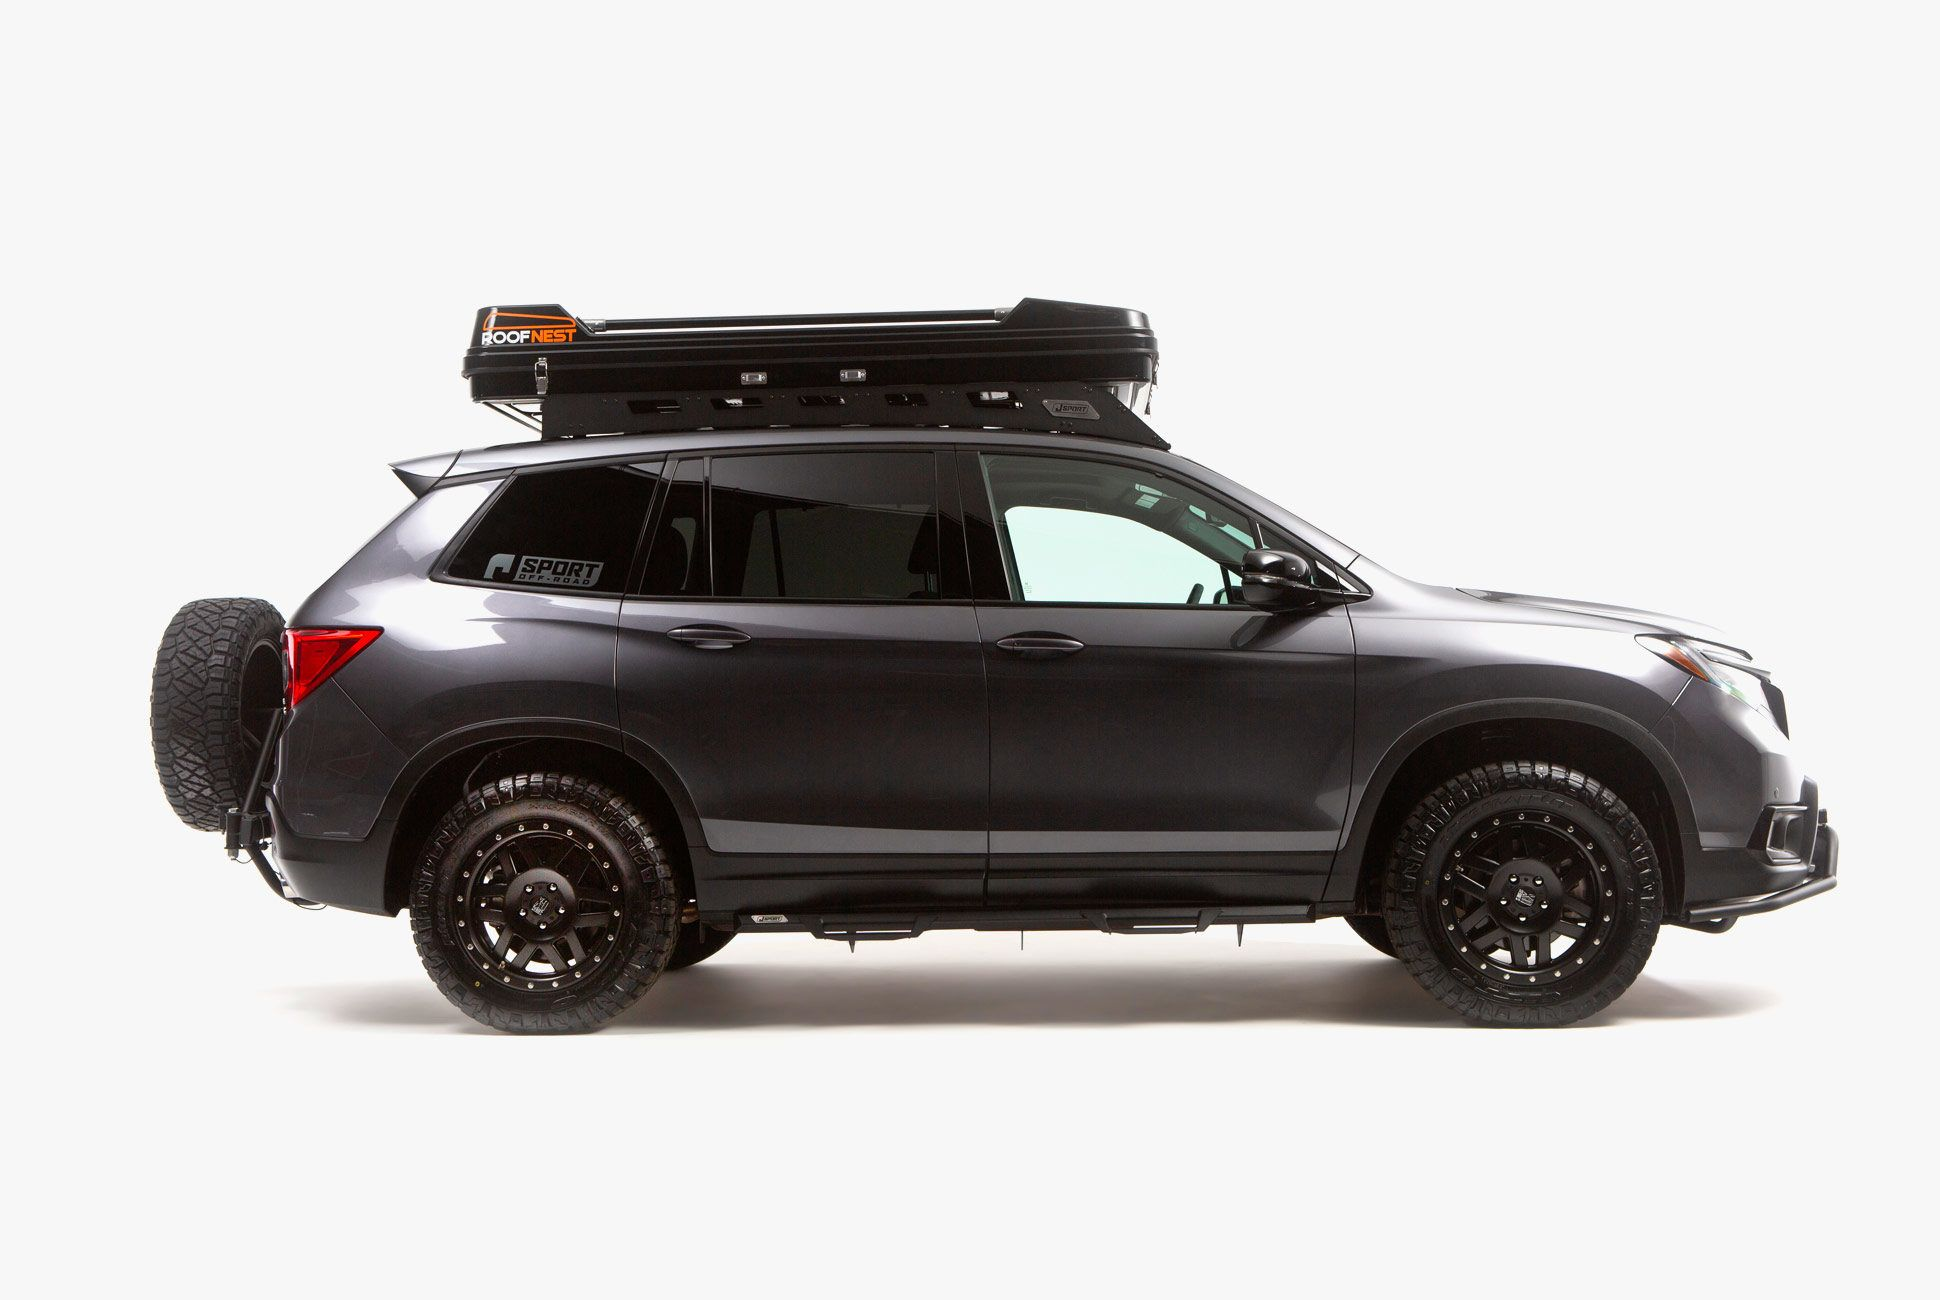 Honda-Passport-Overlander-gear-patrol-slide-2